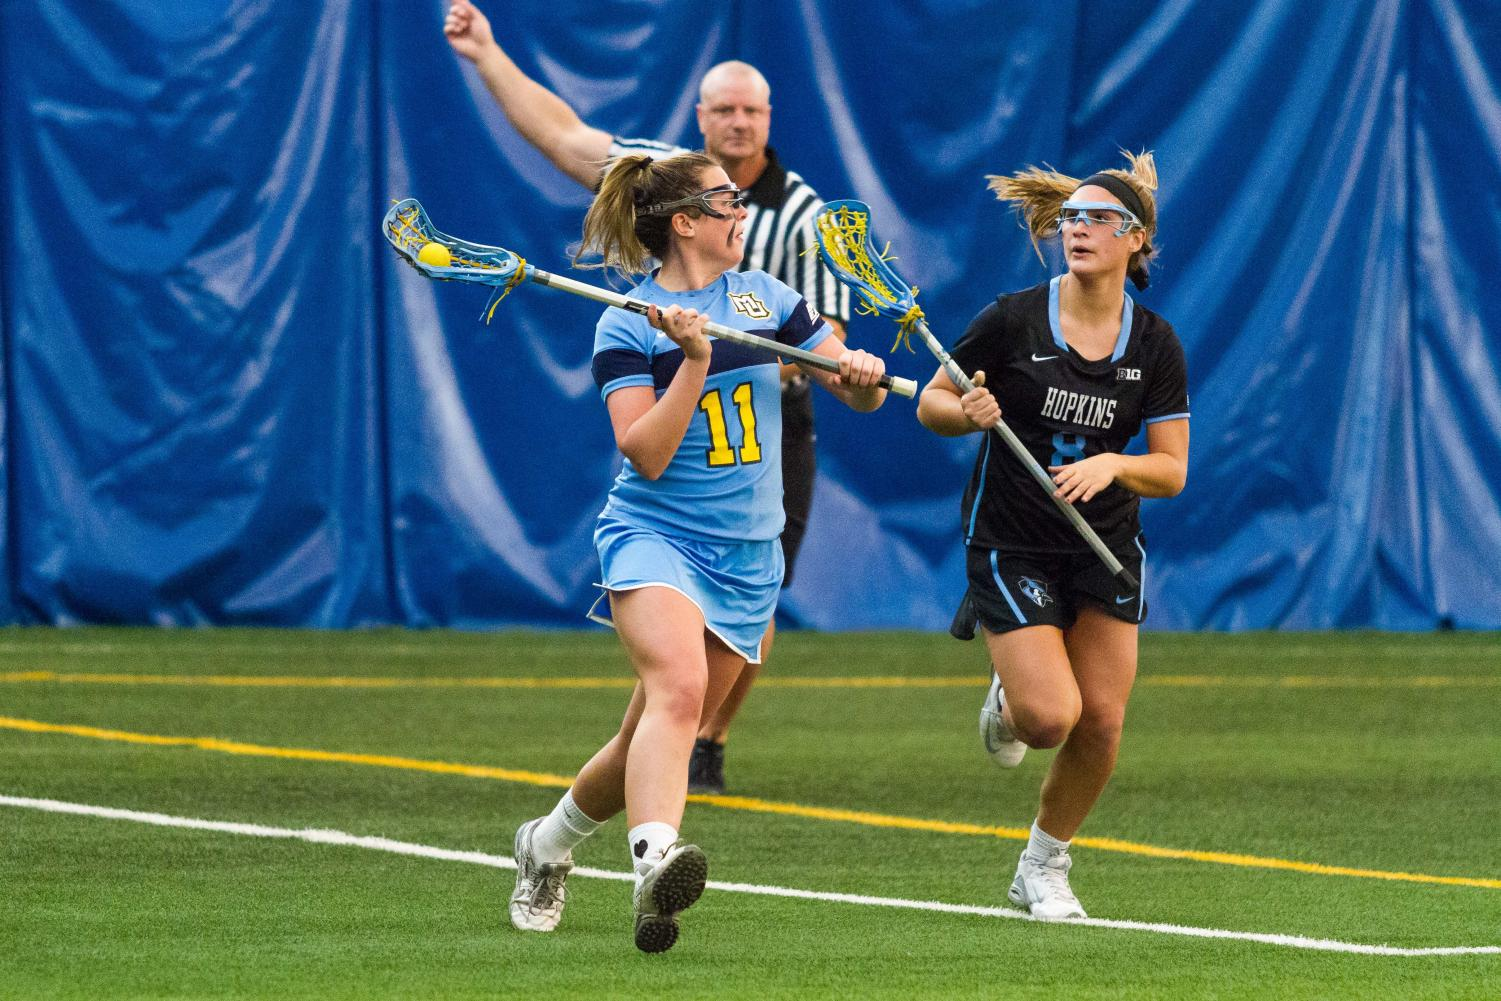 Defender Kaitlyn Viviano prepares to pass the ball in last year's game against Johns Hopkins.